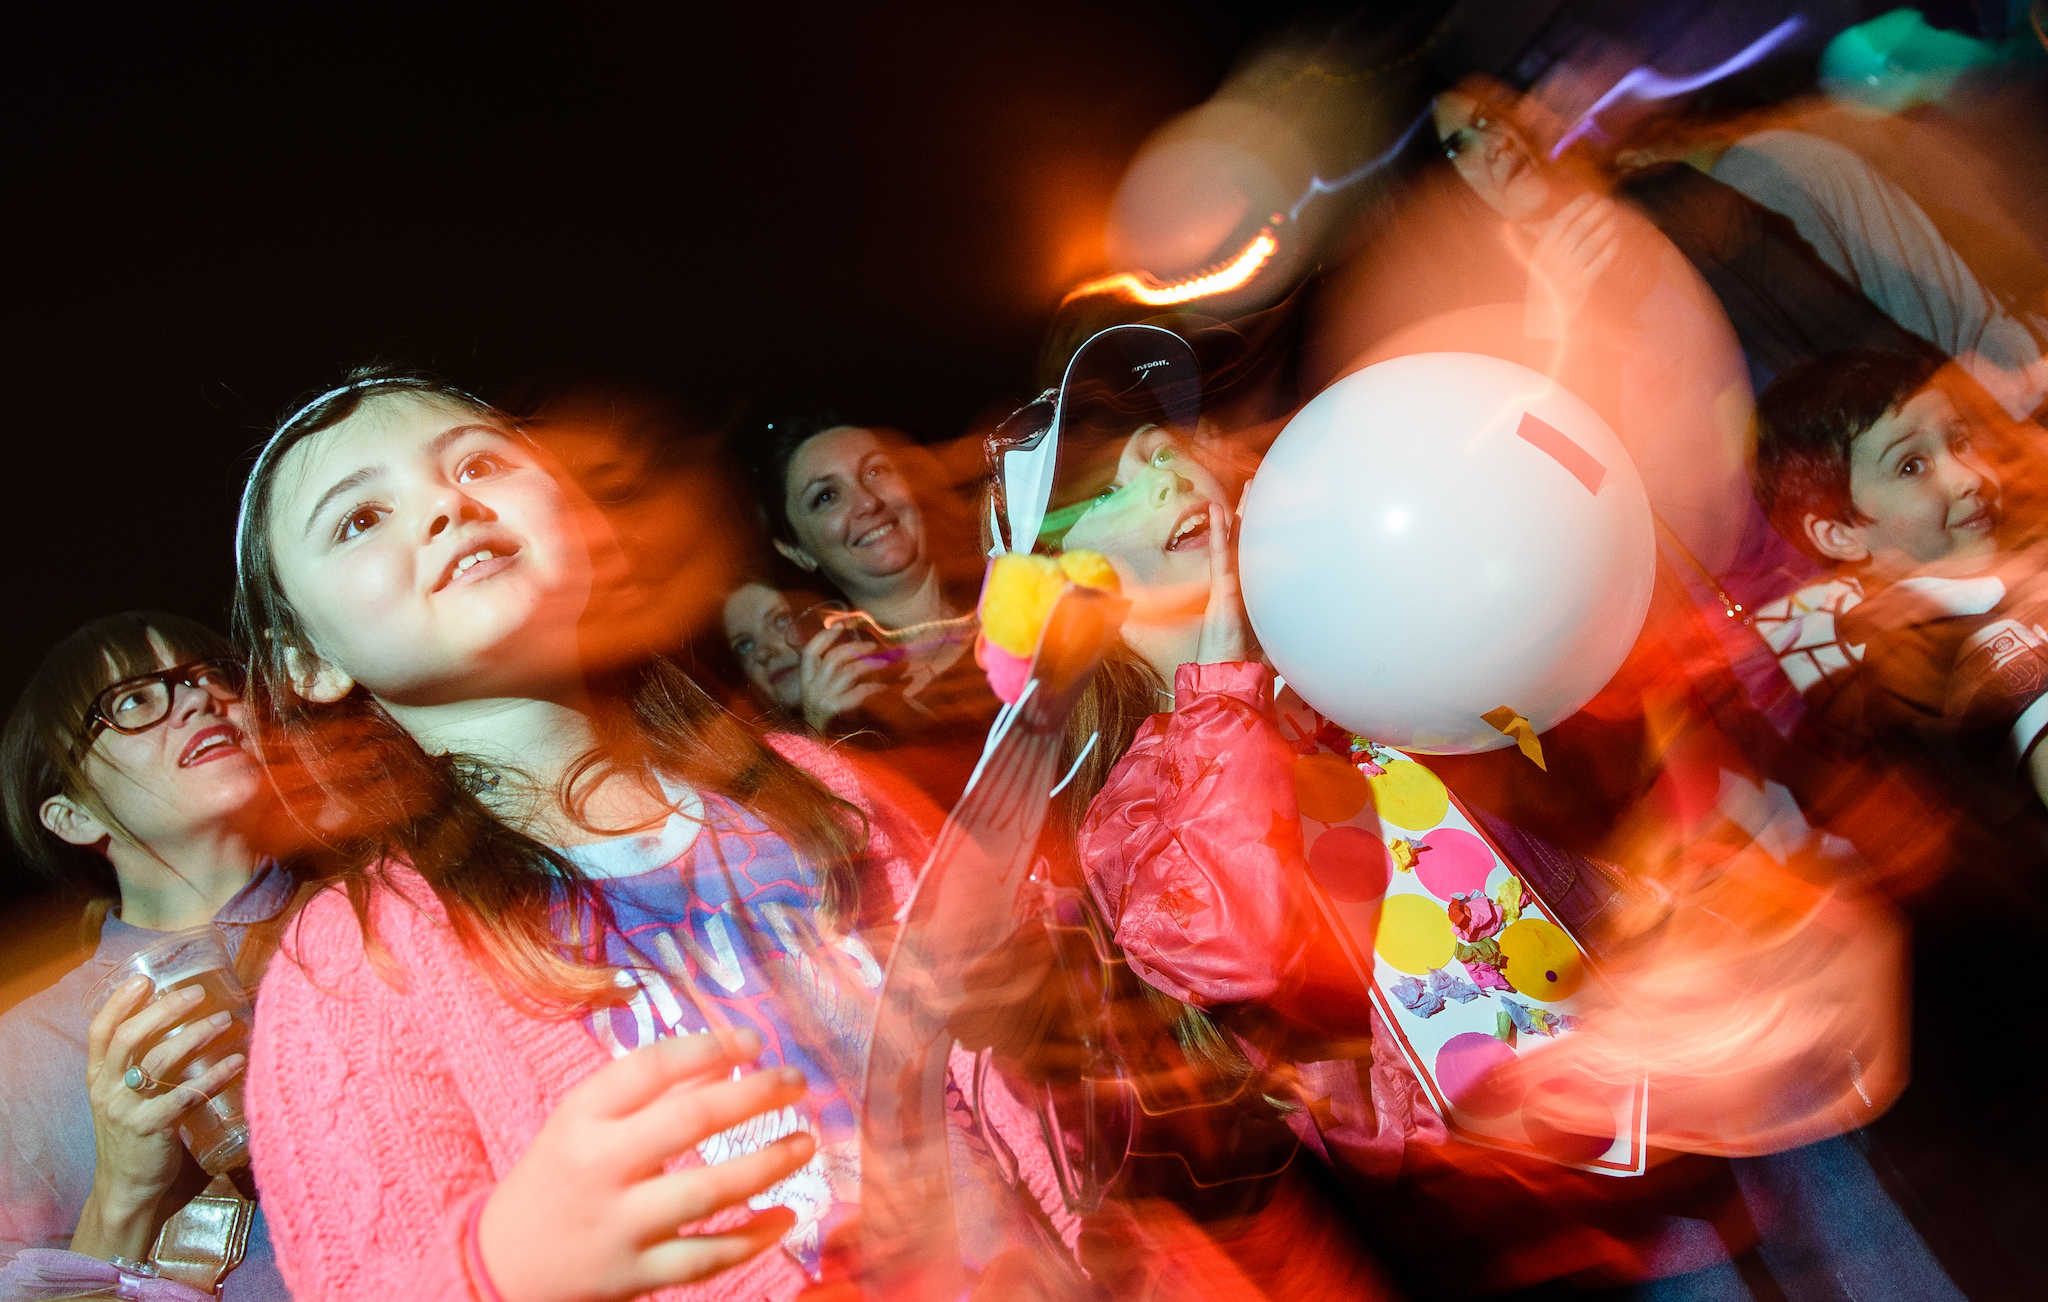 Let off steam at a family rave